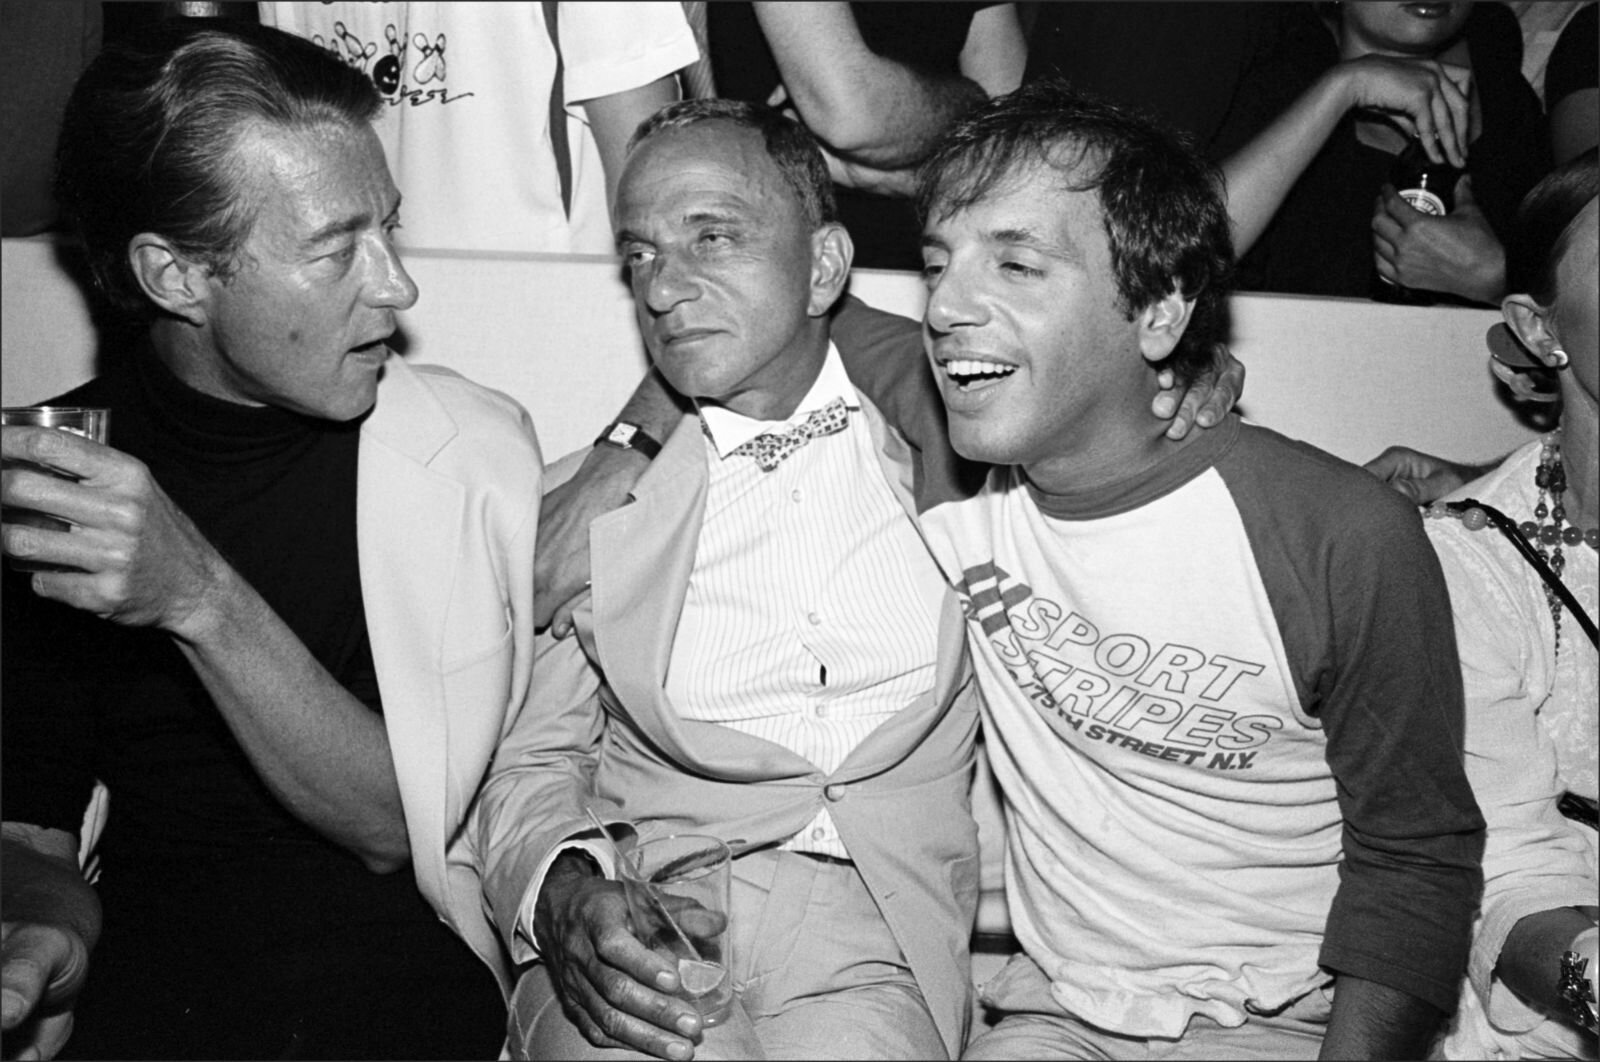 Halston (left to right), Roy Cohn, Steve Rubell getting drunk, making nice.